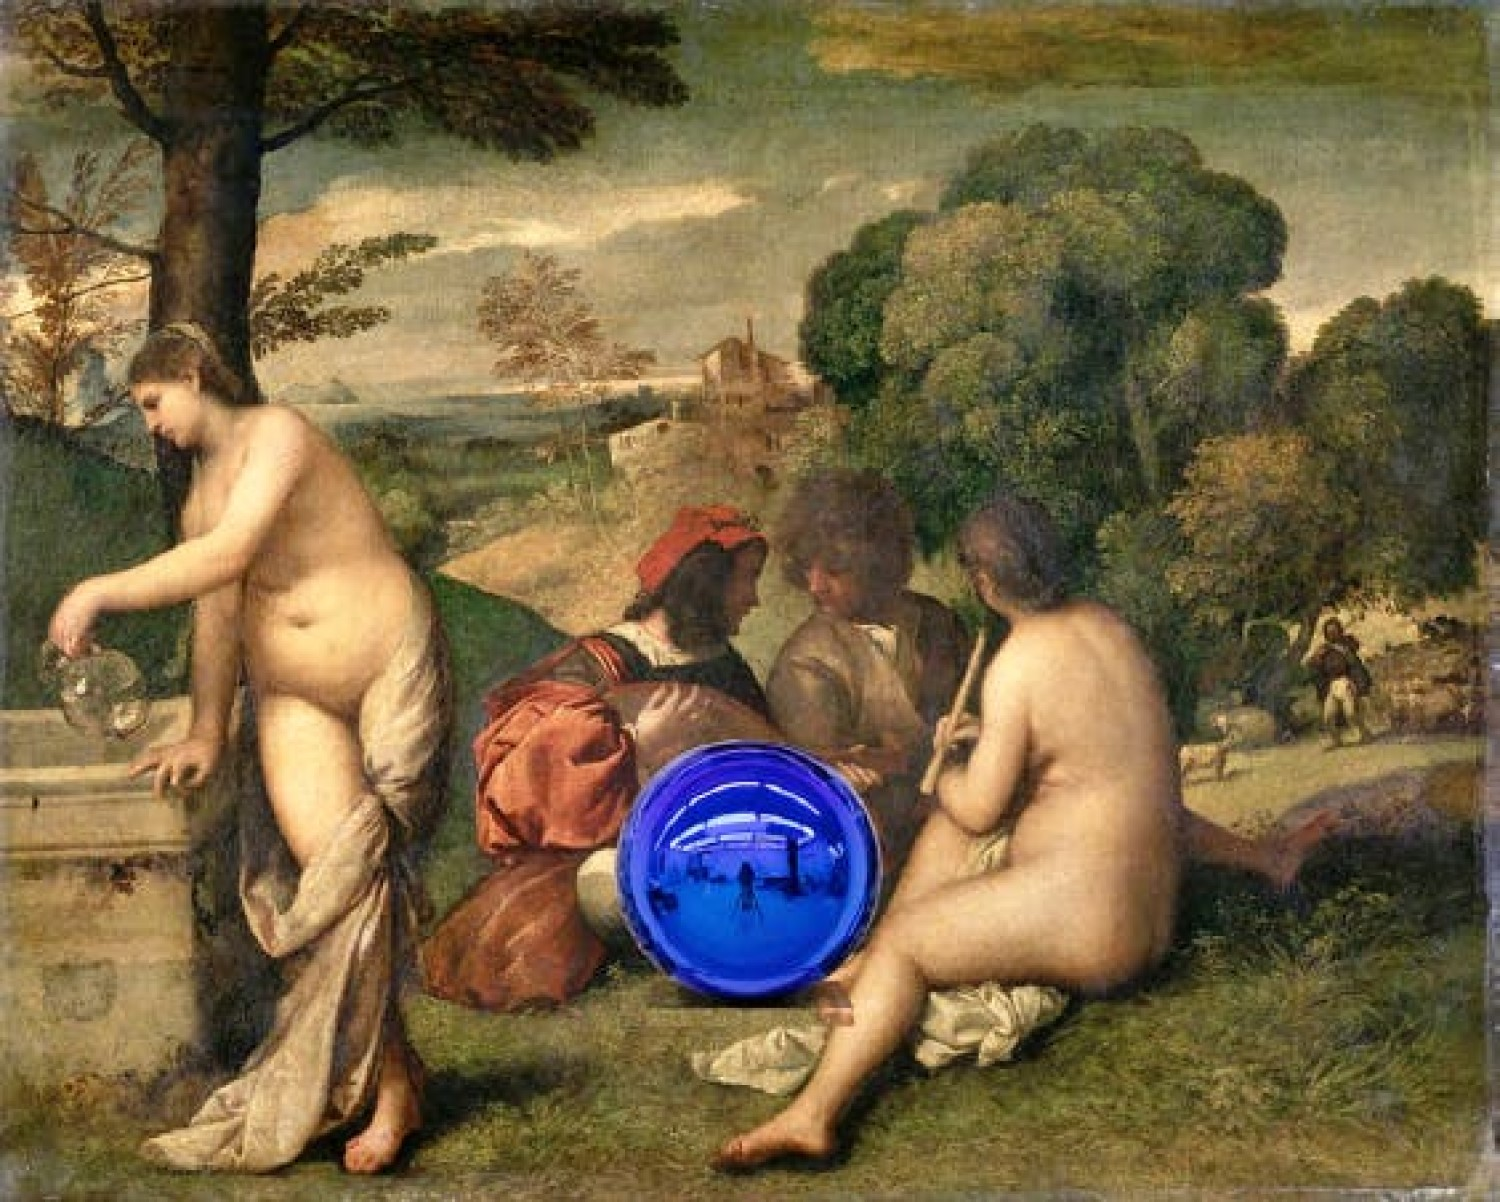 Gazing Ball (Titian Pastoral Concert) (detail; 2016), Jeff Koons. © Jeff Koons – Courtesy of the artist and Almine Rech Gallery